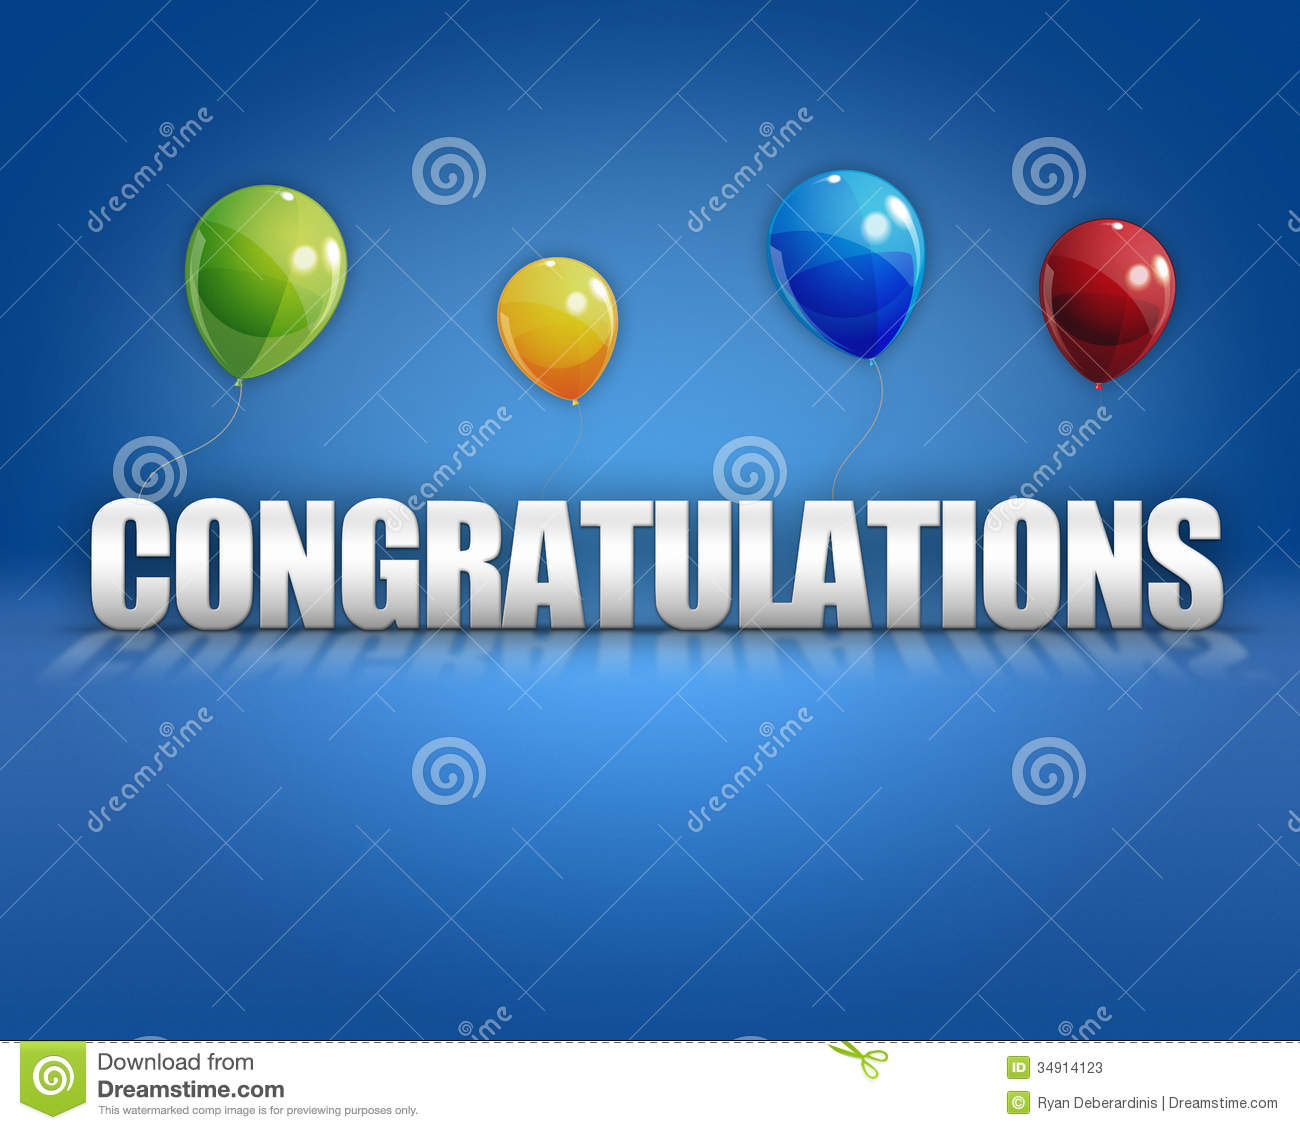 Congratulations Balloons 3d Background Stock Photos